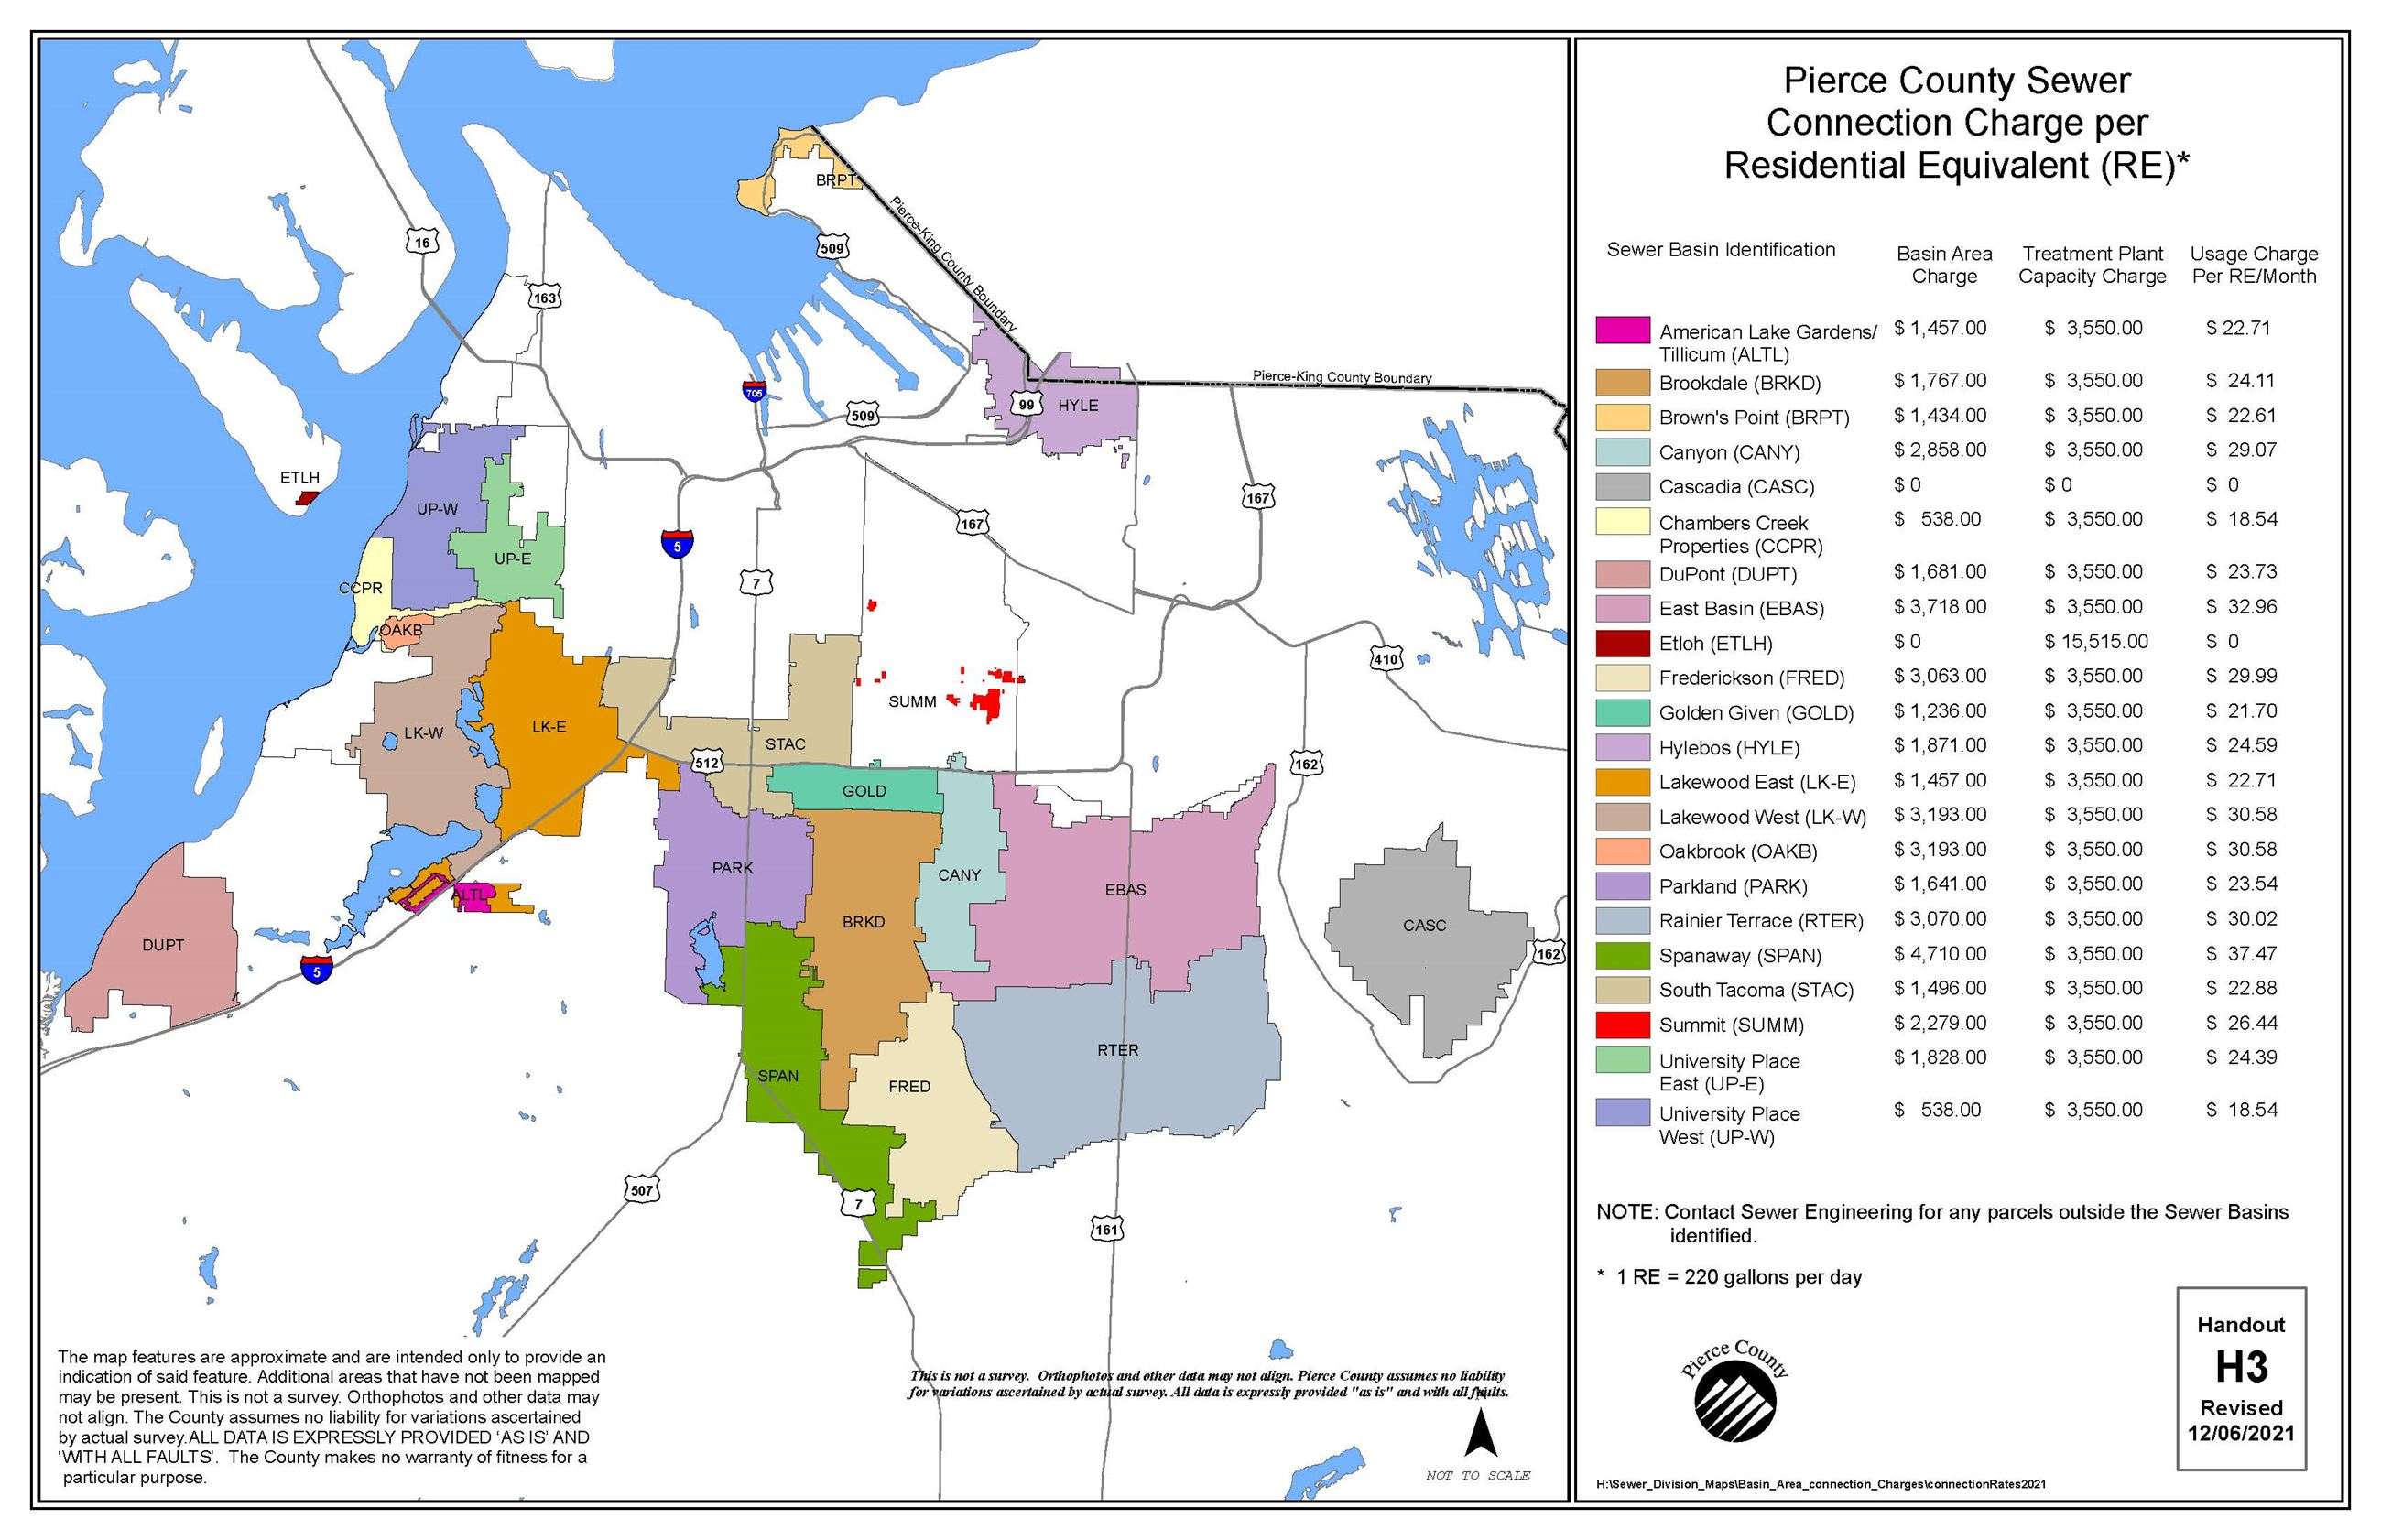 Map of Pierce County sewer connection charges per residential equivalent (RE)